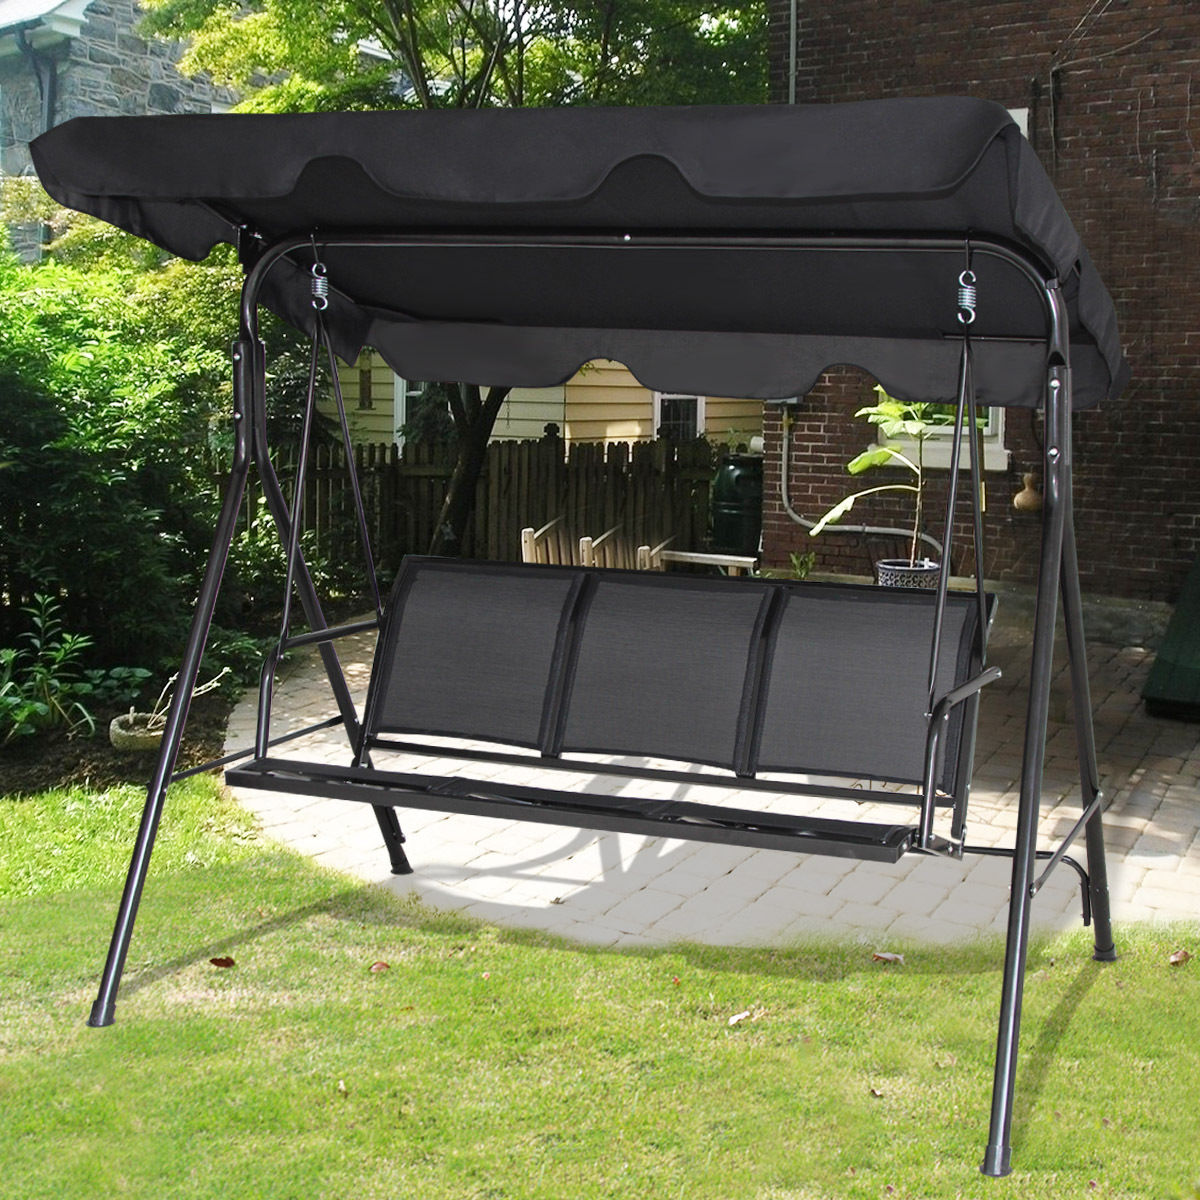 Gymax Black Outdoor Swing Canopy Patio Swing Chair 3 Person Canopy Hammock by Gymax